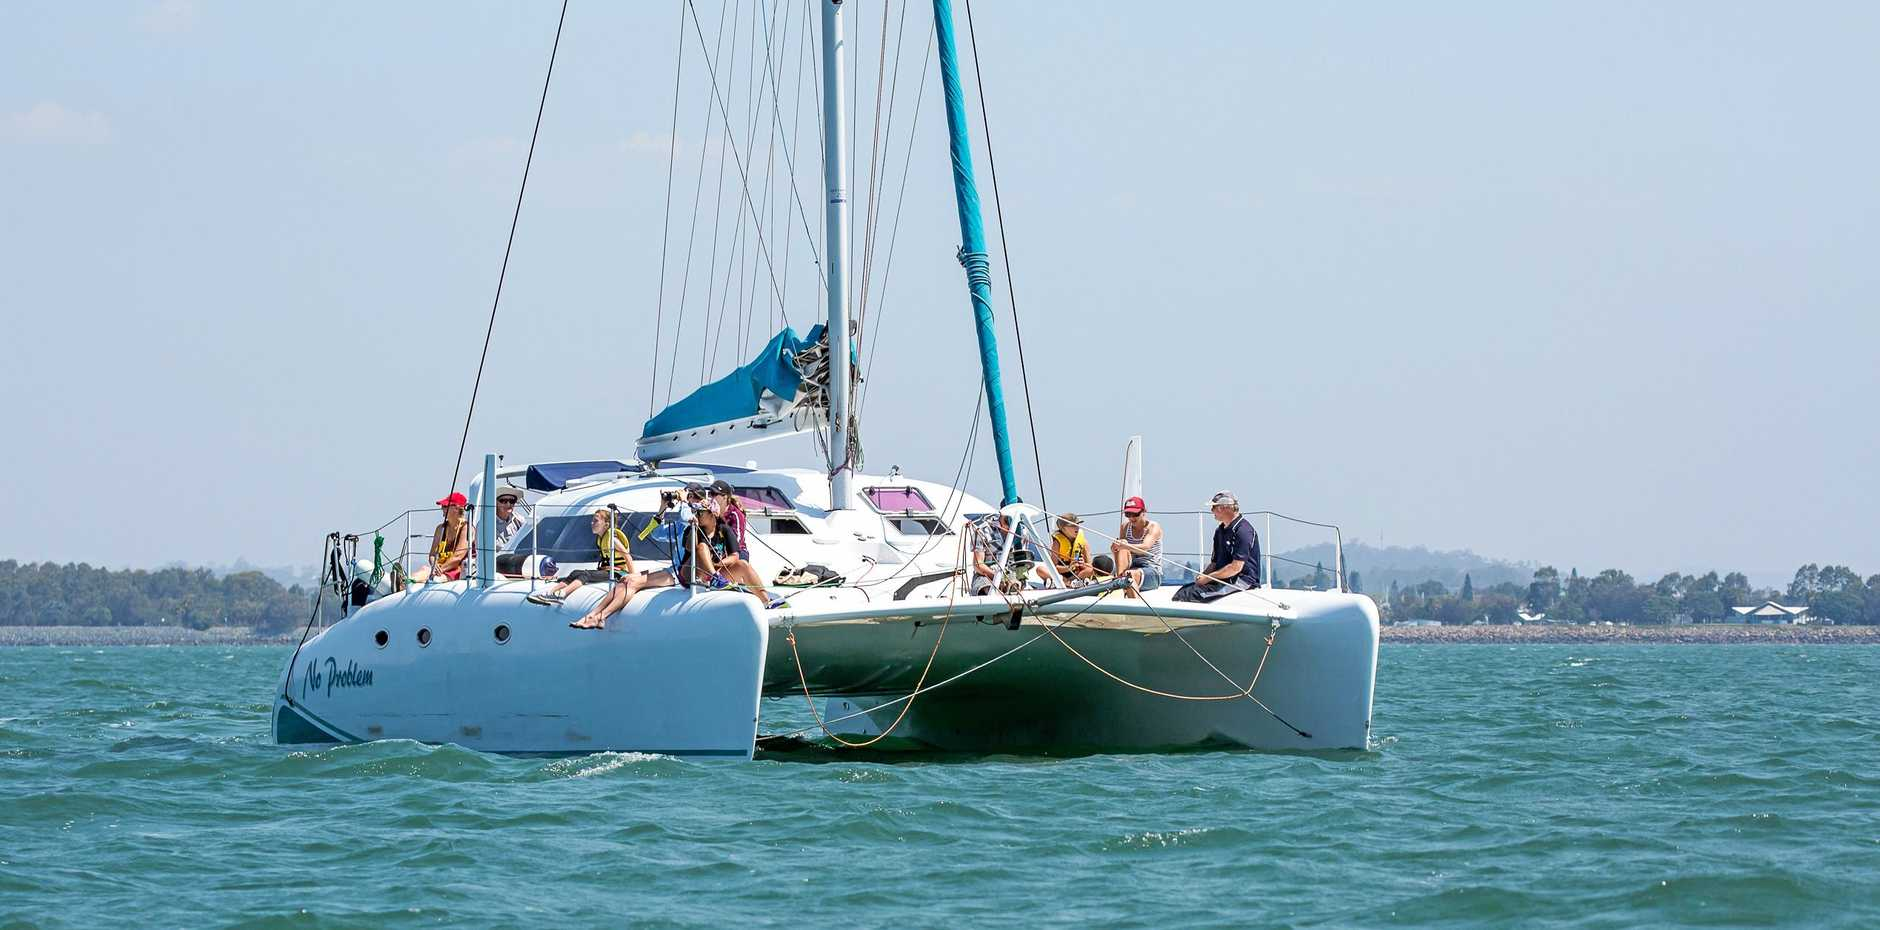 No Problem is one of three Gladstone boats in the race